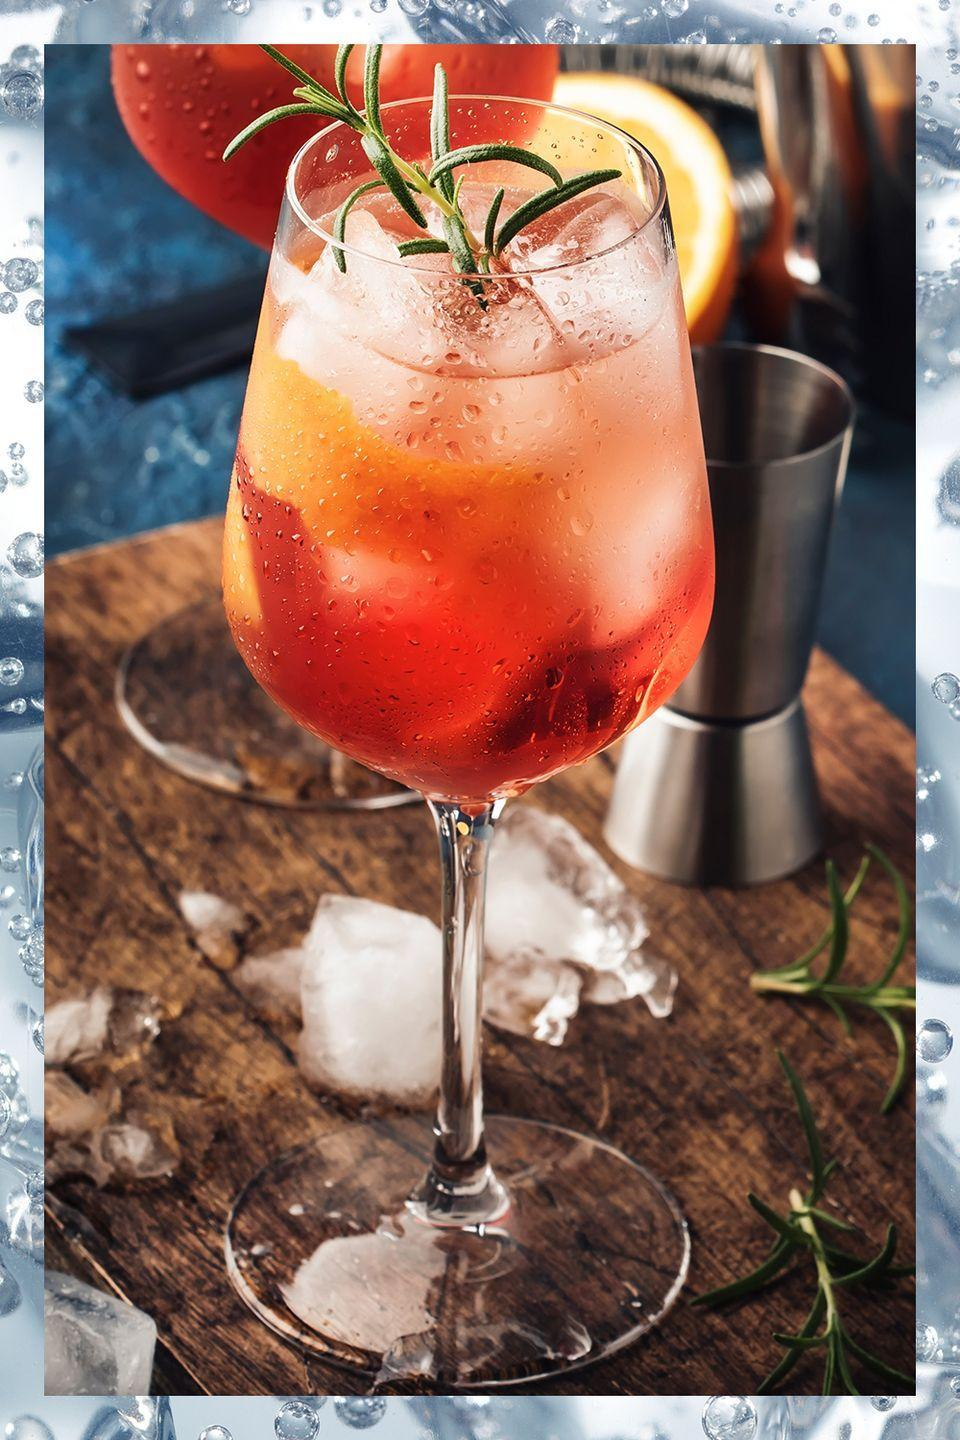 """<p>Low on alcohol and high on refreshment, the spritz has been a crowd-pleasing favorite aperitivo for <a href=""""https://www.townandcountrymag.com/leisure/drinks/a28748705/aperol-spritz-drink-recipe-history"""" rel=""""nofollow noopener"""" target=""""_blank"""" data-ylk=""""slk:more than two centuries."""" class=""""link rapid-noclick-resp"""">more than two centuries.</a> Though it can be made with any amaro or liqueur as a base, by far the best known version is the classic <a href=""""https://www.townandcountrymag.com/leisure/drinks/g27186067/best-aperol-cocktails/"""" rel=""""nofollow noopener"""" target=""""_blank"""" data-ylk=""""slk:Aperol Spritz"""" class=""""link rapid-noclick-resp"""">Aperol Spritz</a>:</p><p>-Equal parts Aperol<br>-Equal parts Cinzano Prosecco<br>-Splash of Soda</p><p><em>Mix all ingredients in a wine glass with ice and gently stir. Garnish with an orange slice.</em></p>"""